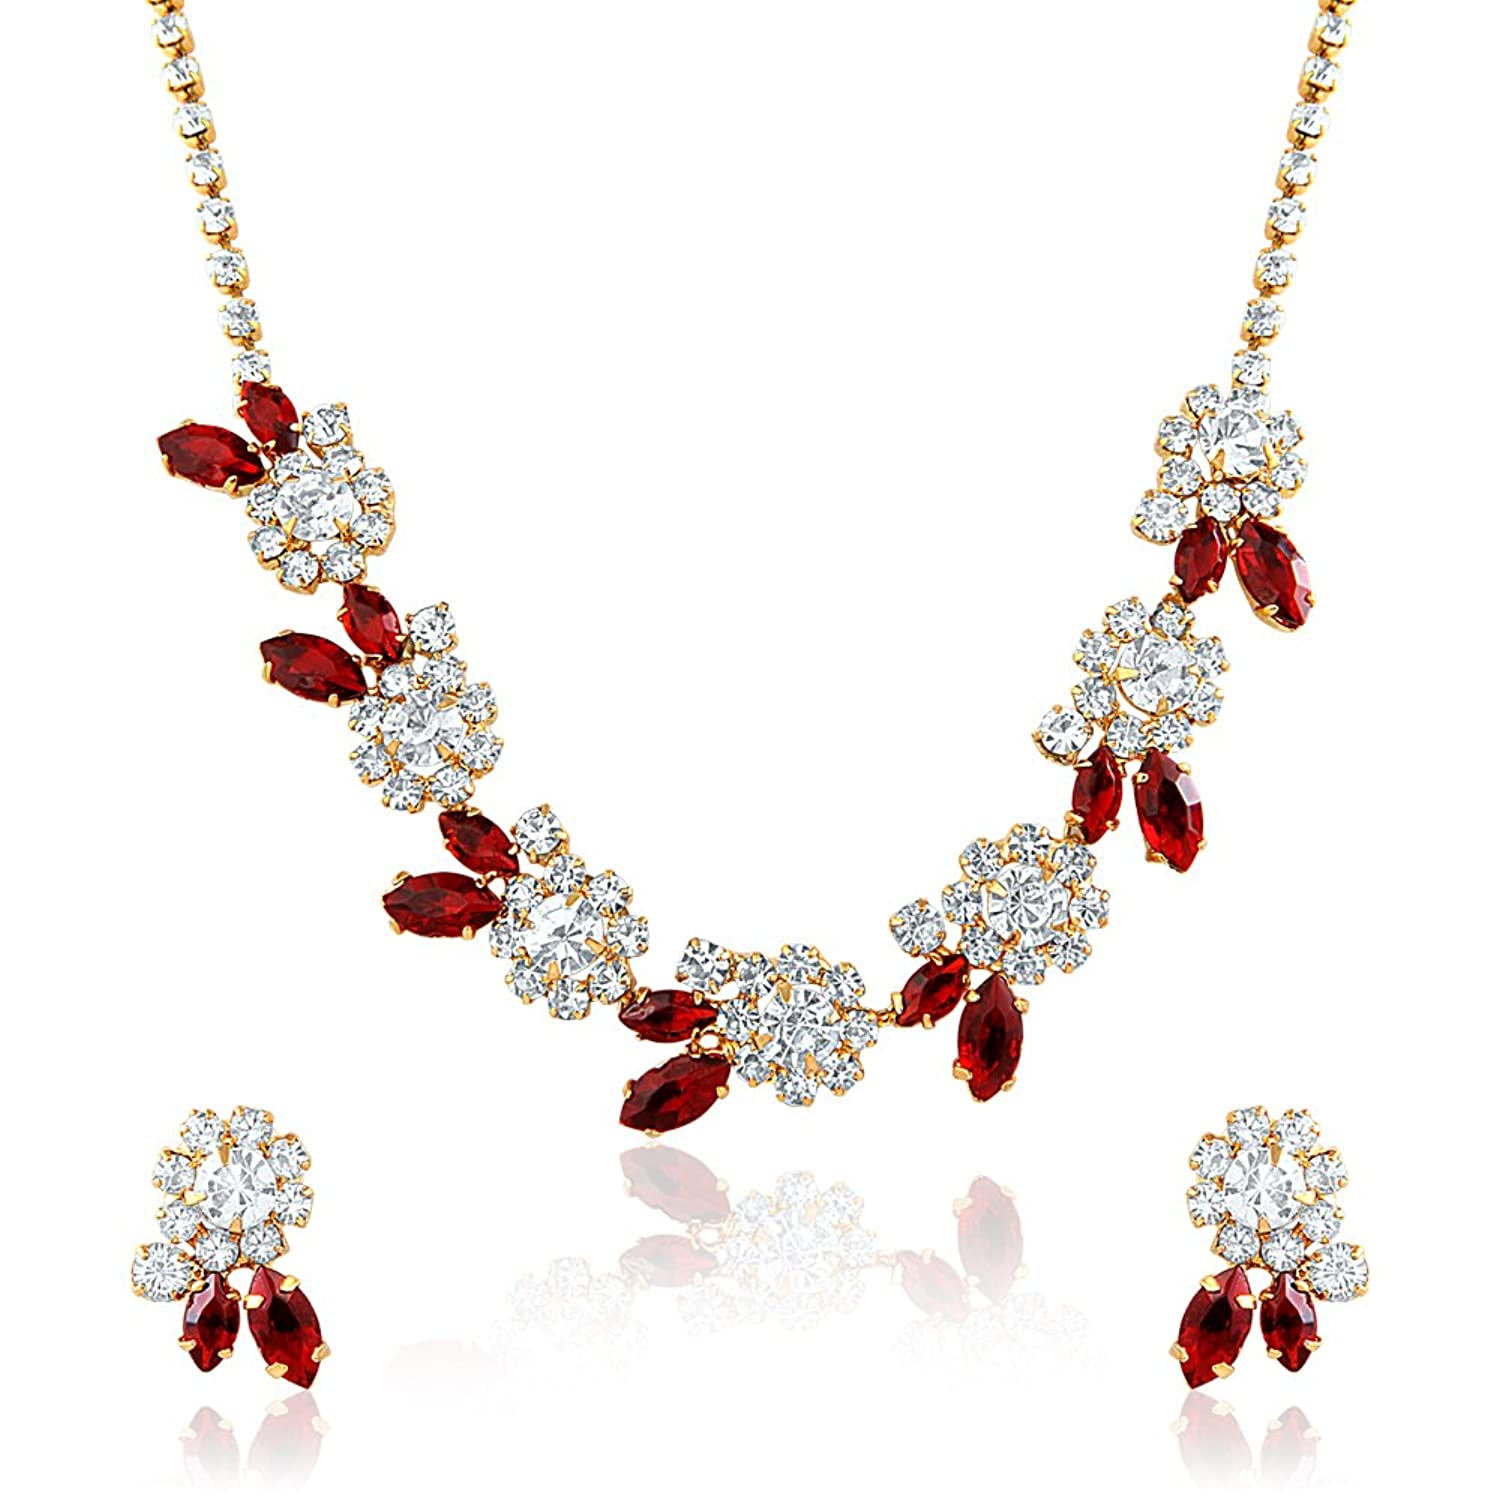 cropped manhattan l necklace image front boutique ruby passiana by red lariat borough products from